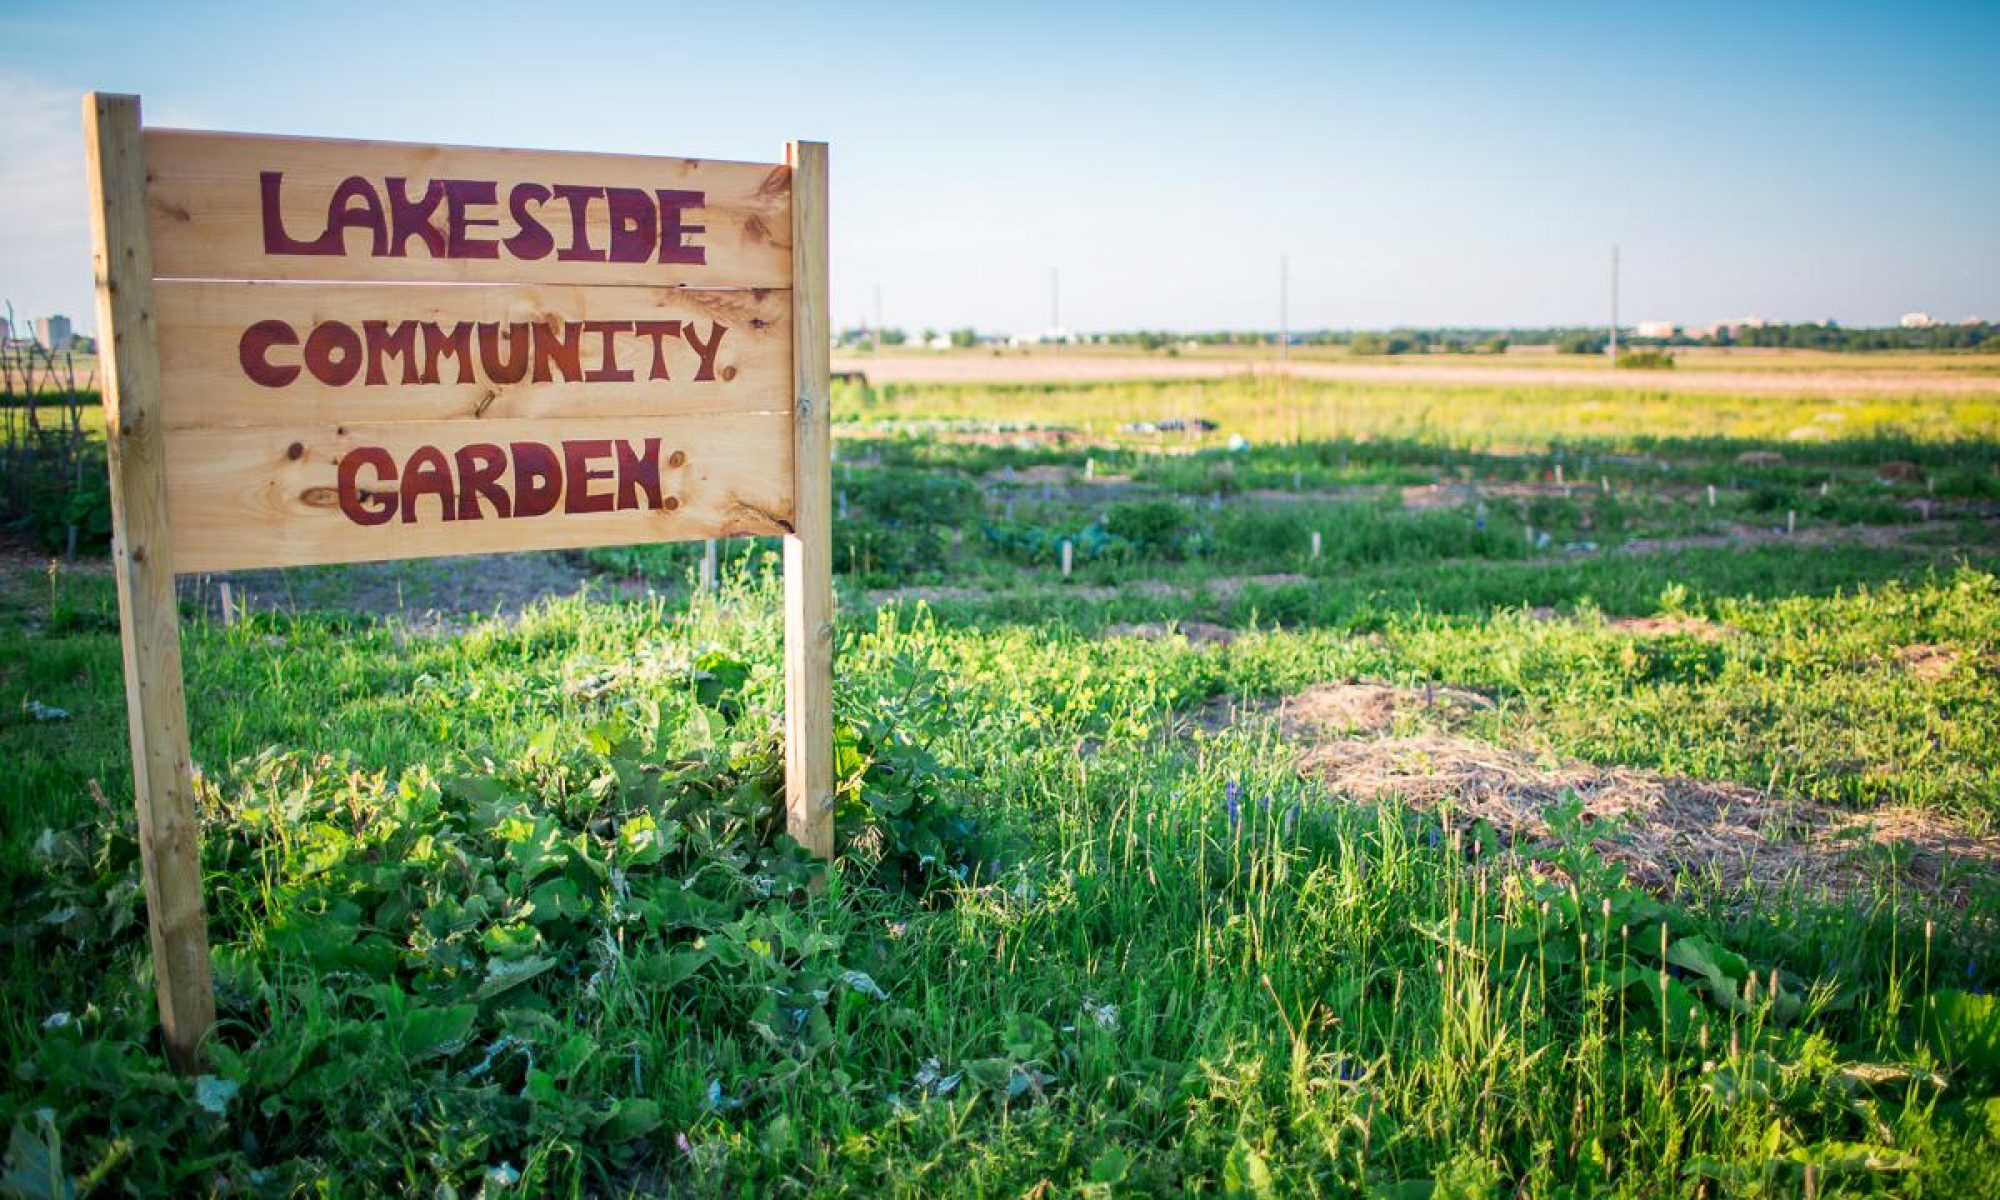 Lakeside Community Garden